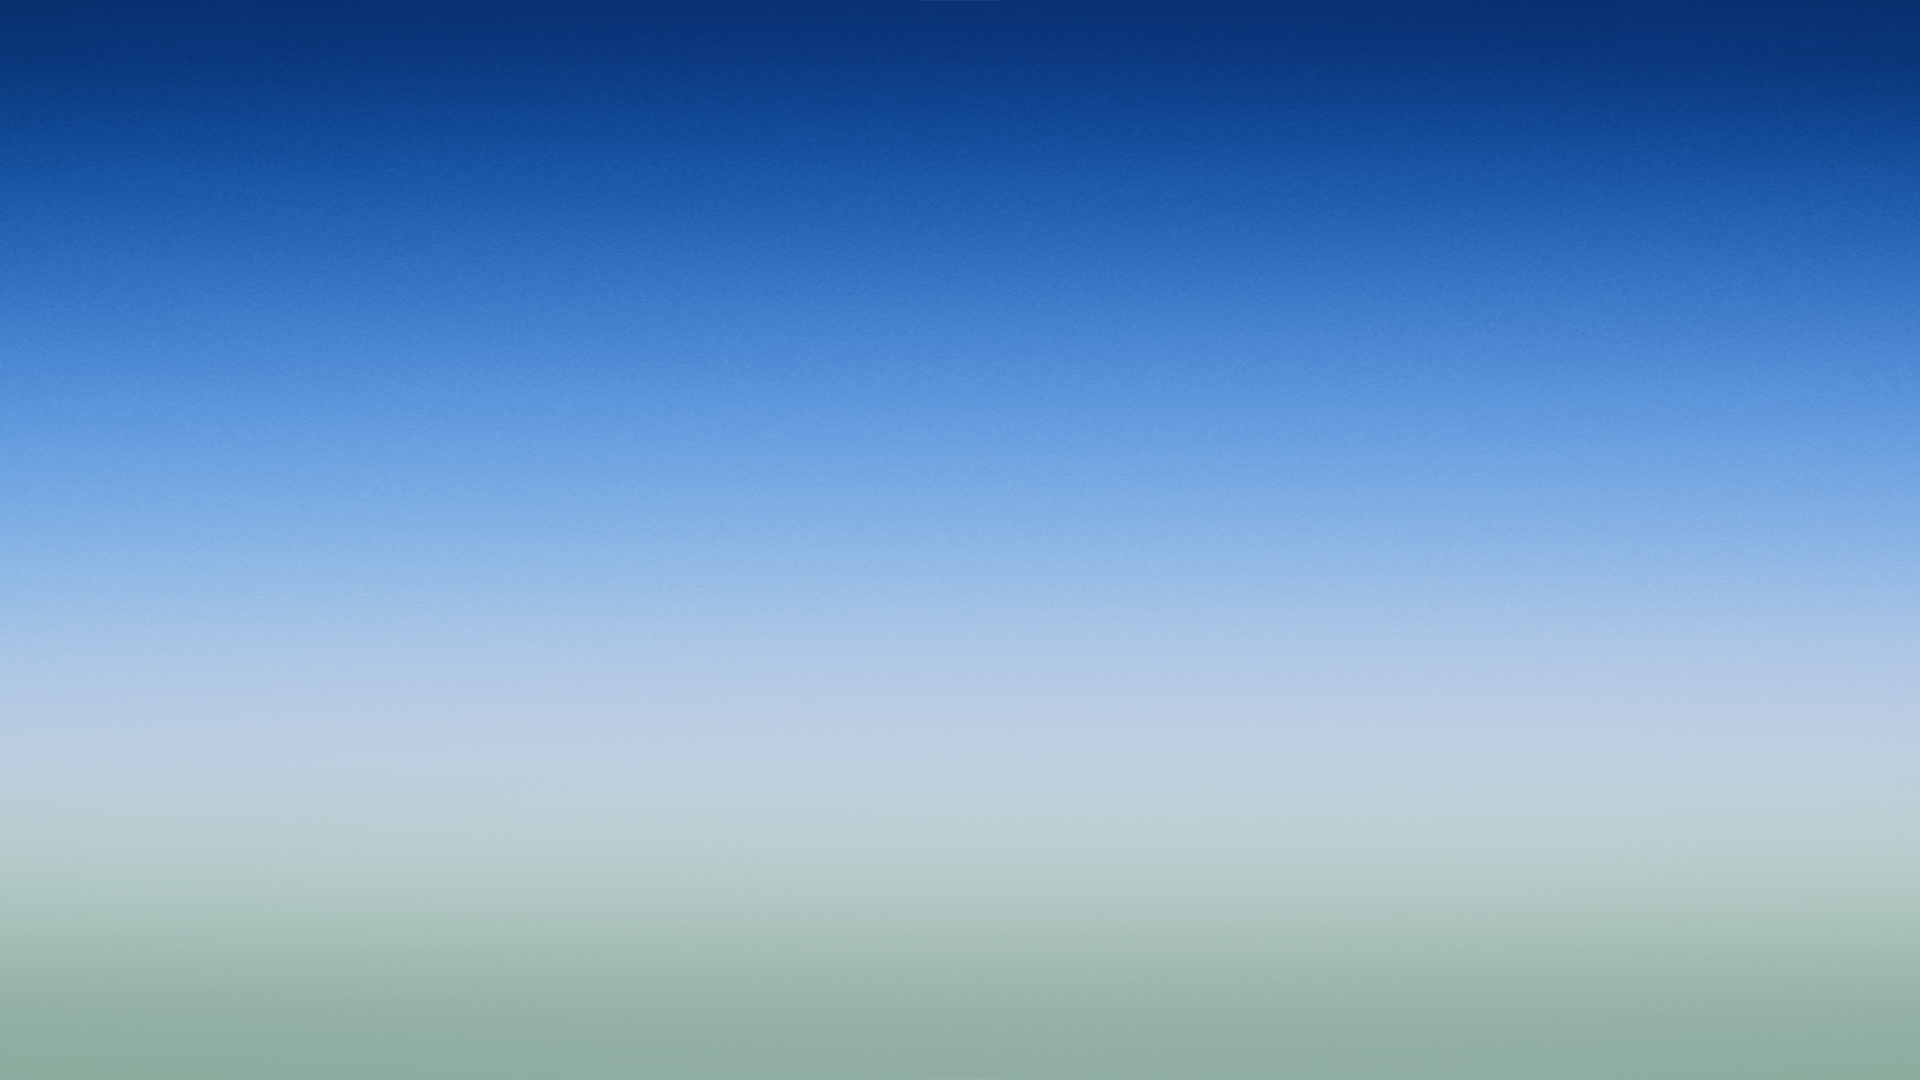 New iOS 71 Wallpaper Available for Download   Softpedia 1920x1080